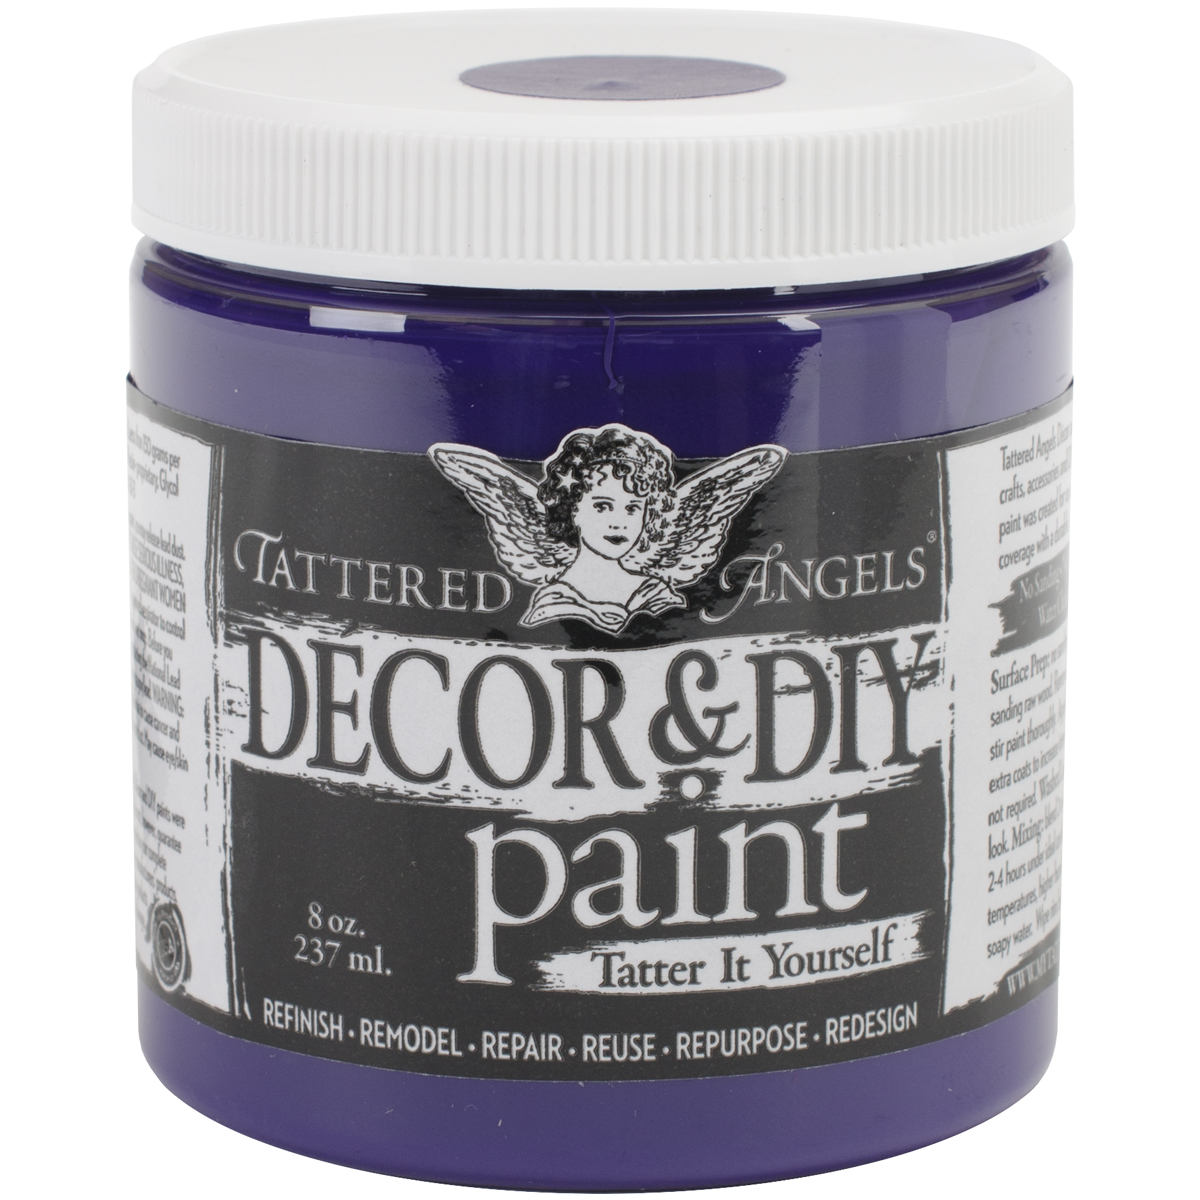 Decor & DIY Paint Cup 8oz-Amethyst